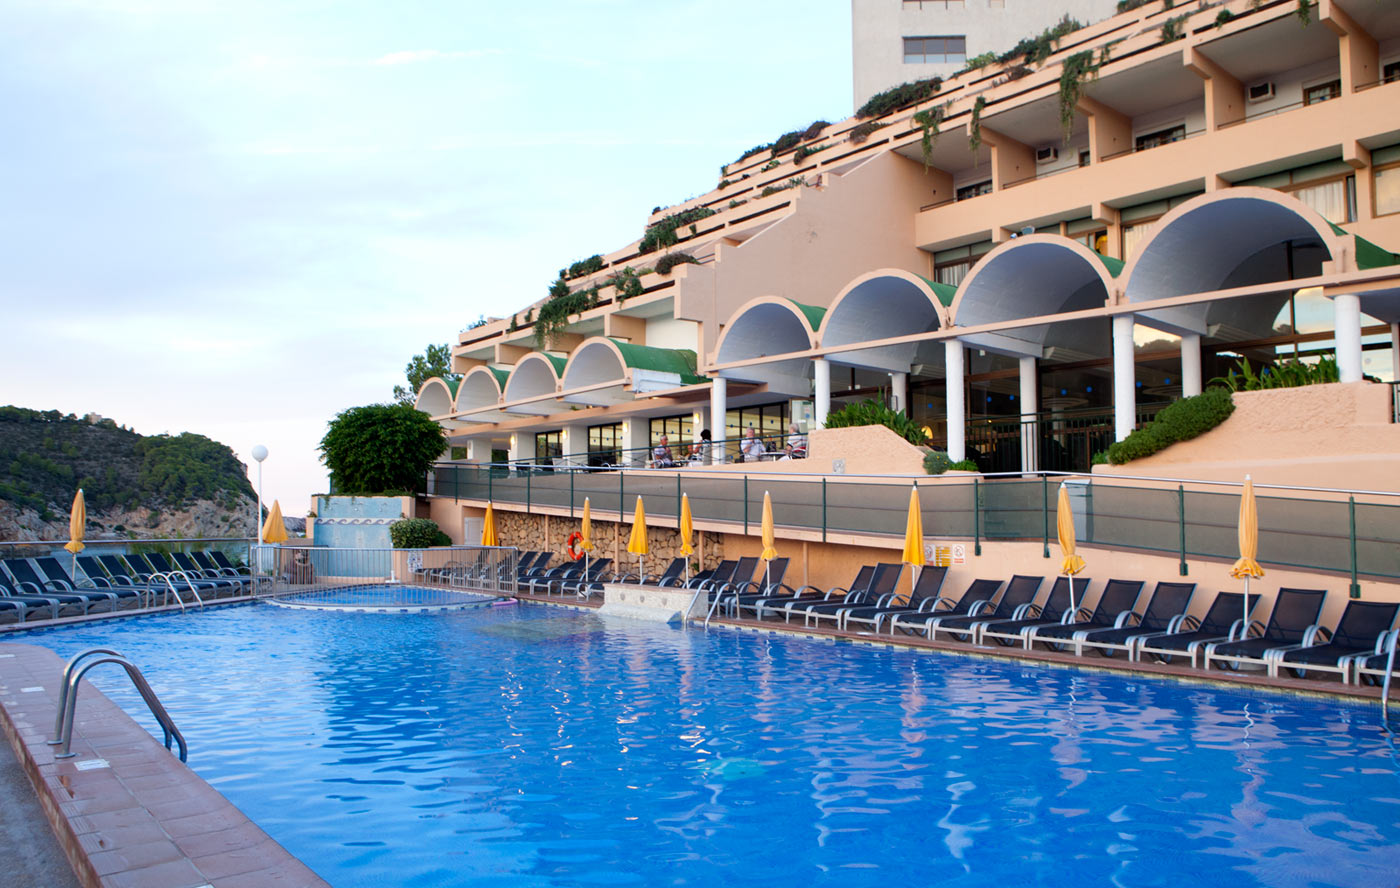 Hotel club cartago ibiza official website for Hotels ibiza